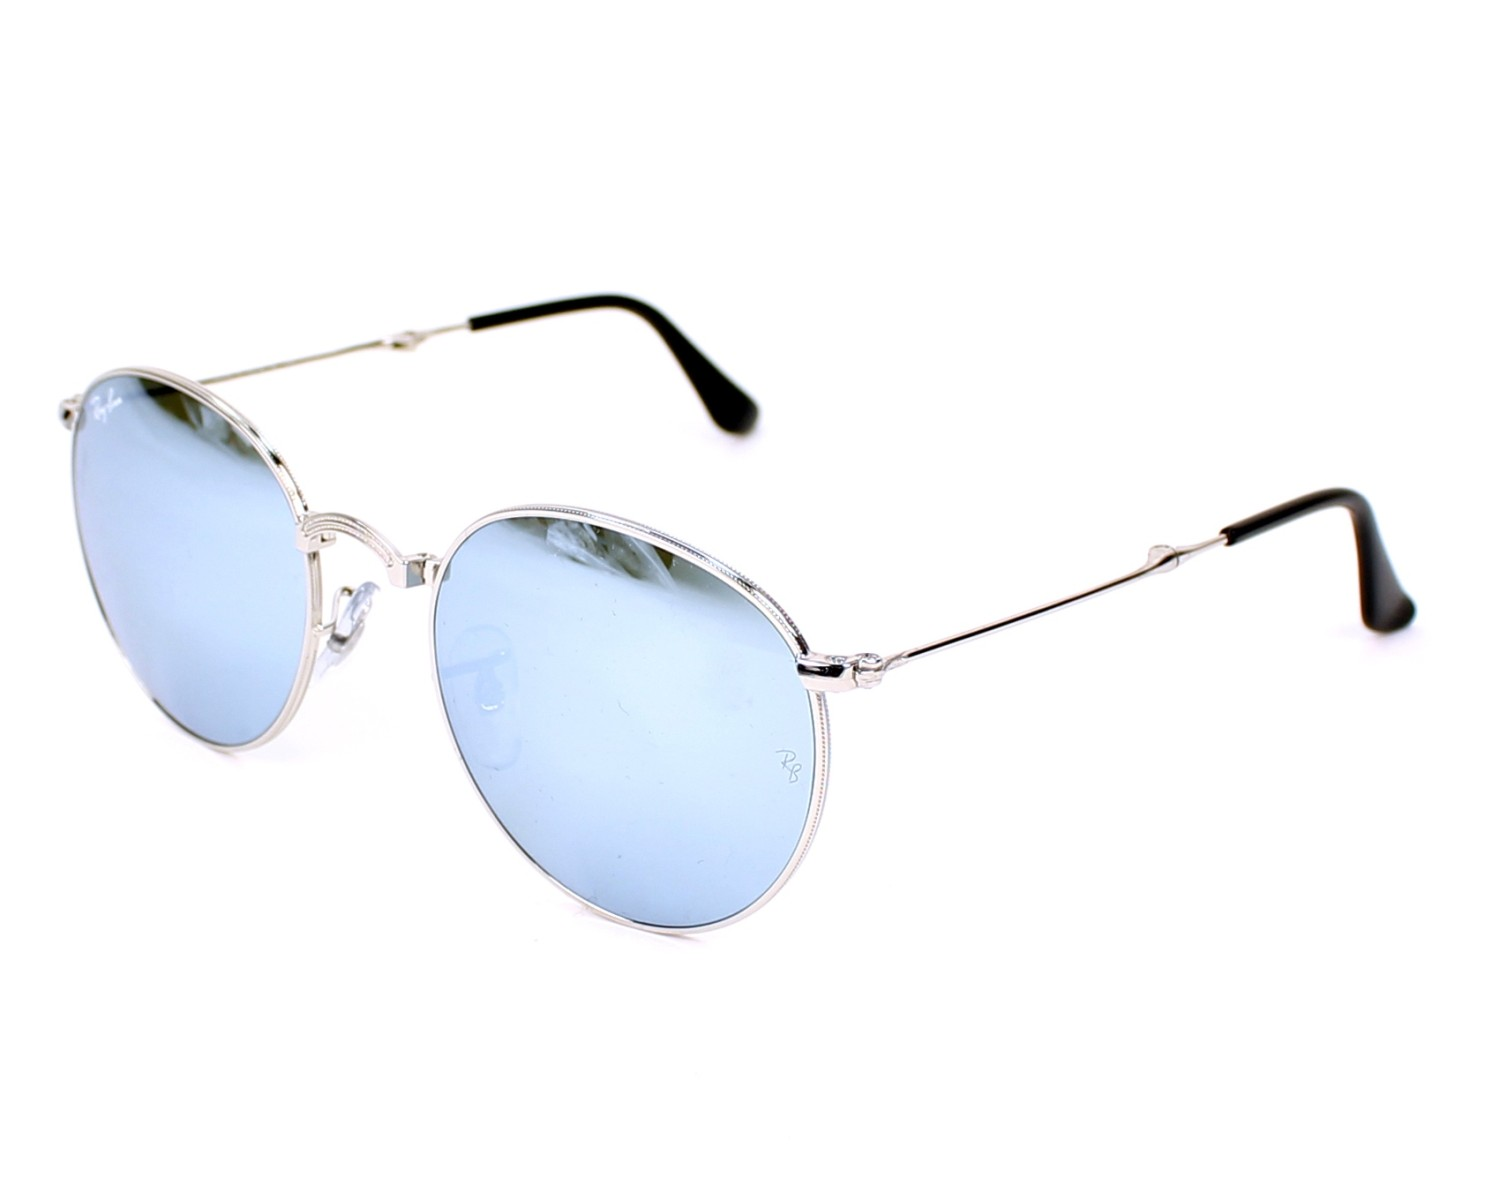 3601339699 thumbnail Sunglasses Ray-Ban RB-3532 003 30 - Silver profile view